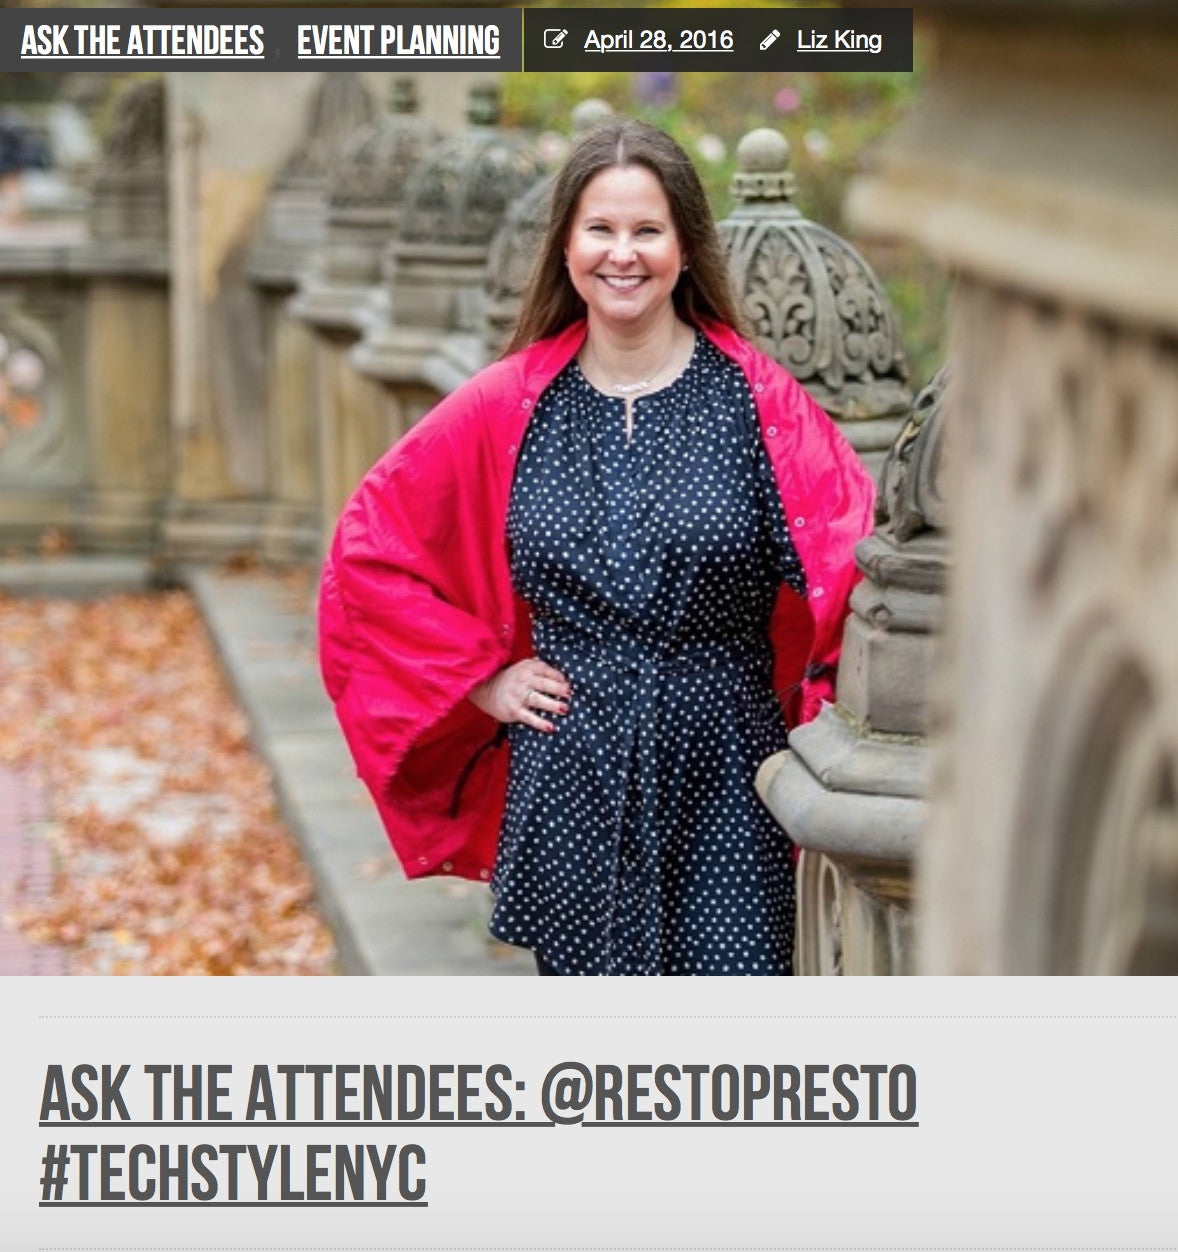 techsytalk talks to RestoPresto Founder Candi Obrentz about New York Fashion Week